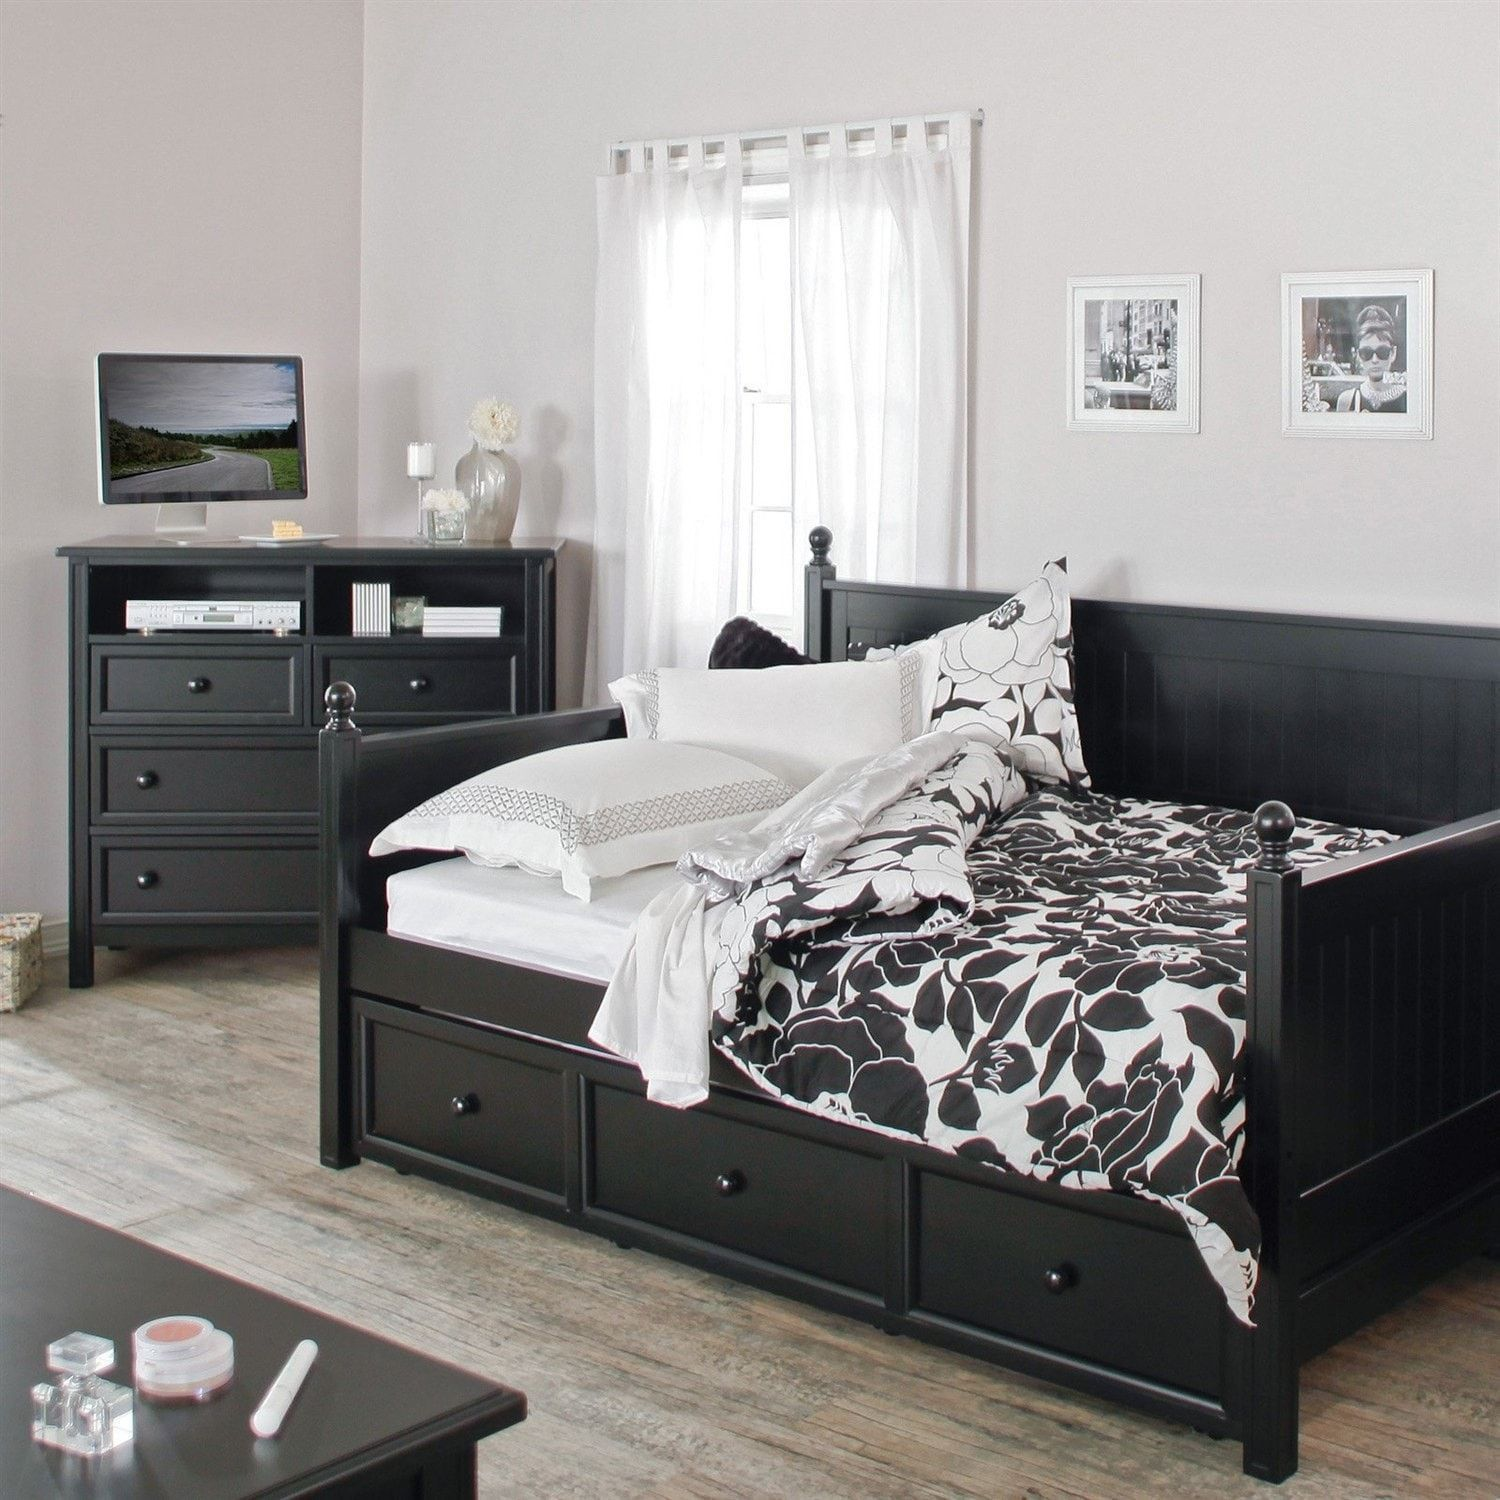 Full size Black Wood Daybed with Pullout Trundle Bed